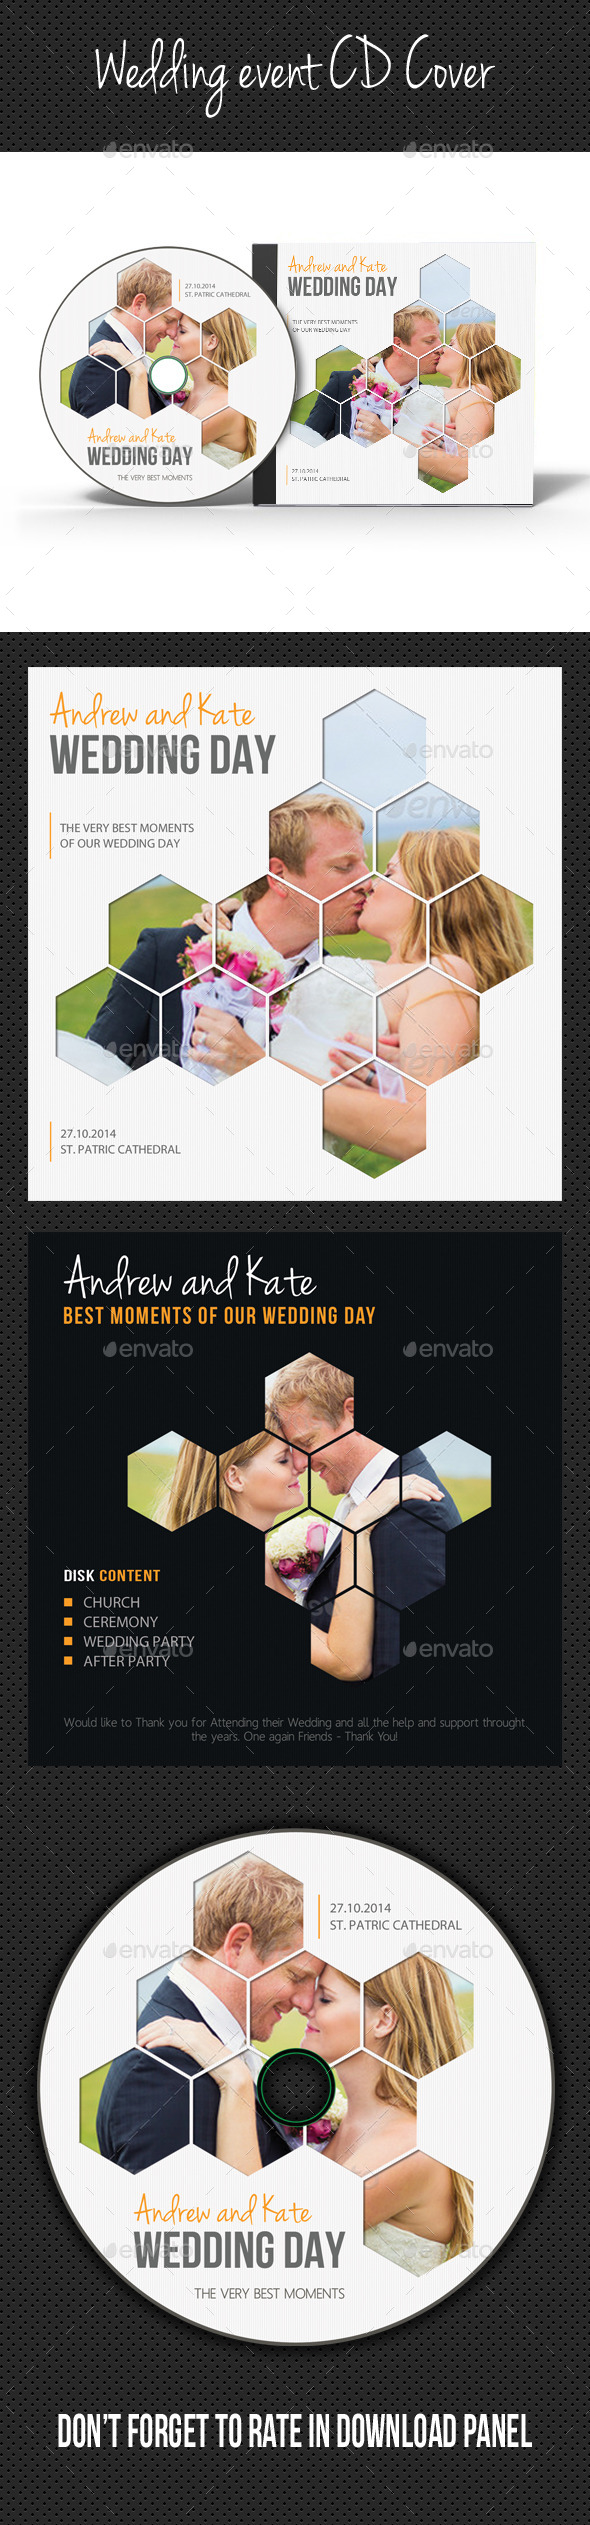 GraphicRiver Wedding Event CD Cover V06 9102144